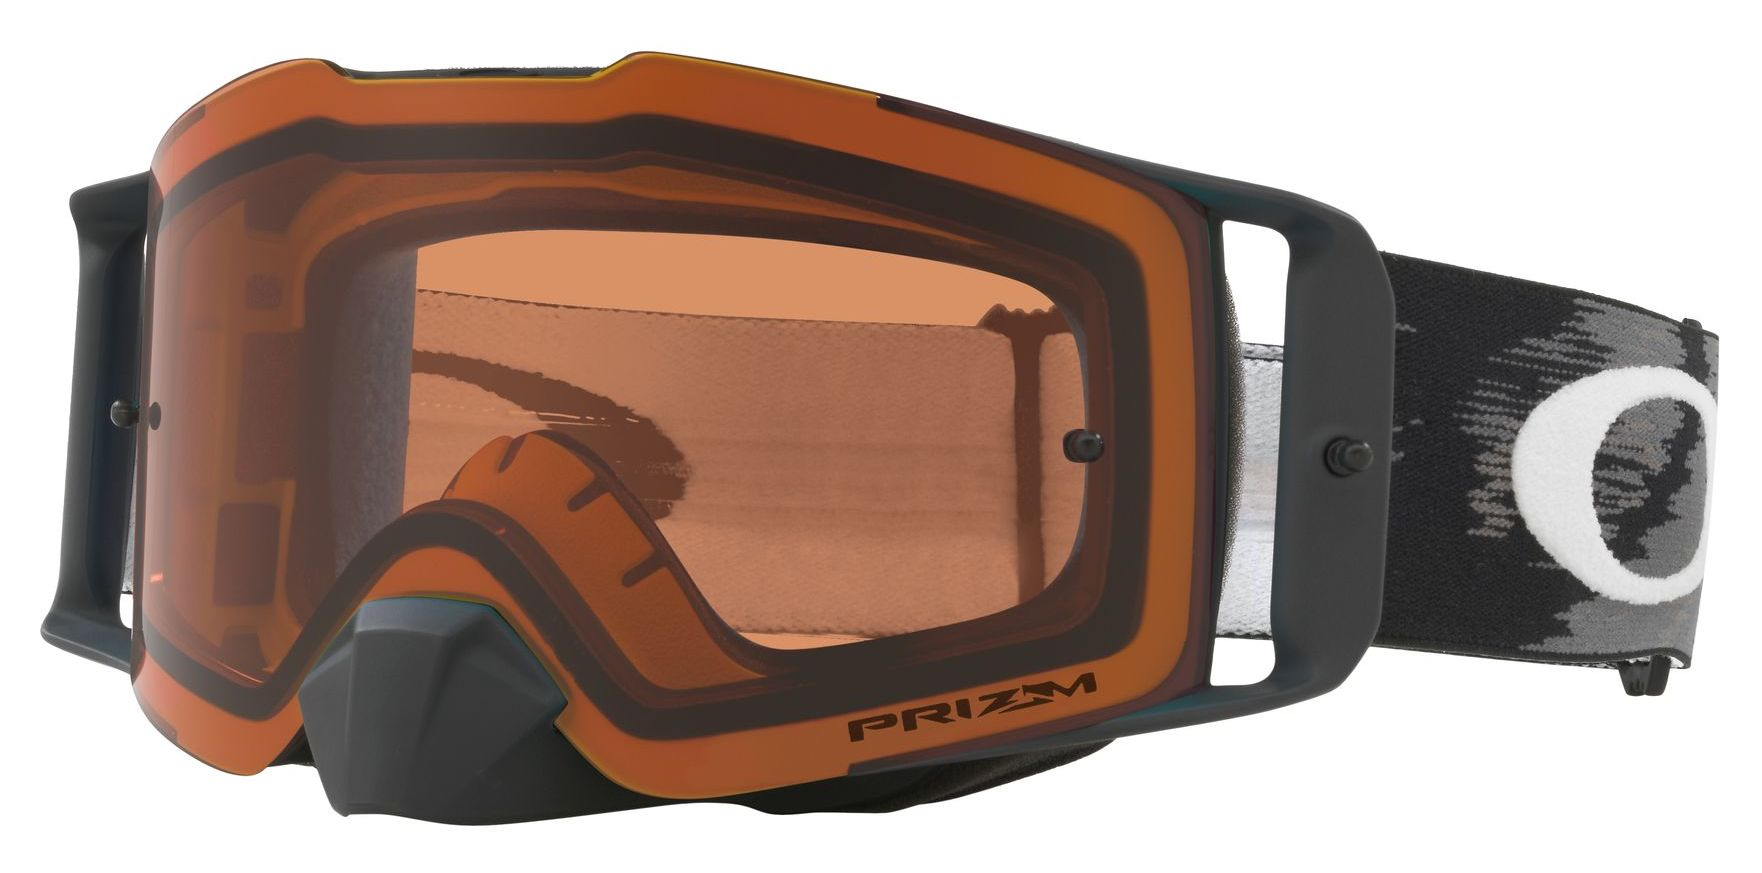 7a9f6169c1d Oakley Front Line MX Prizm Goggles - Cycle Gear